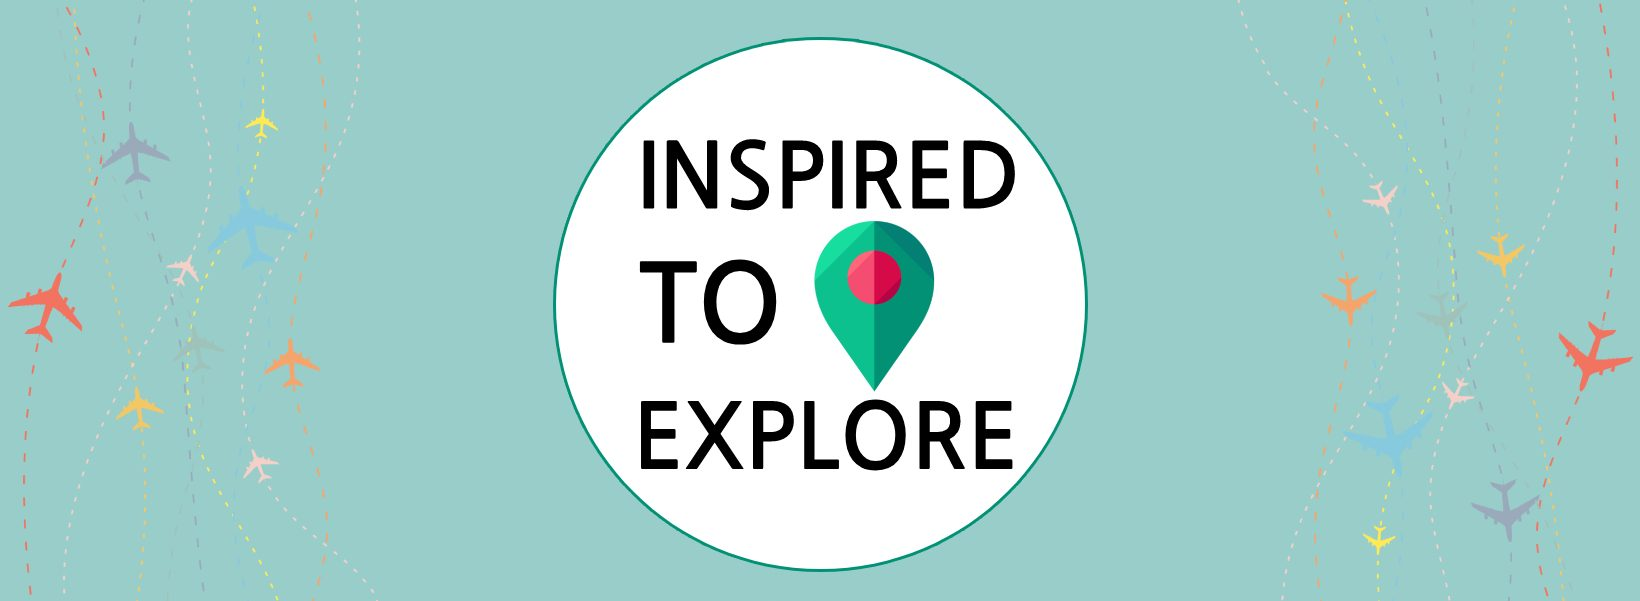 Inspired To Explore